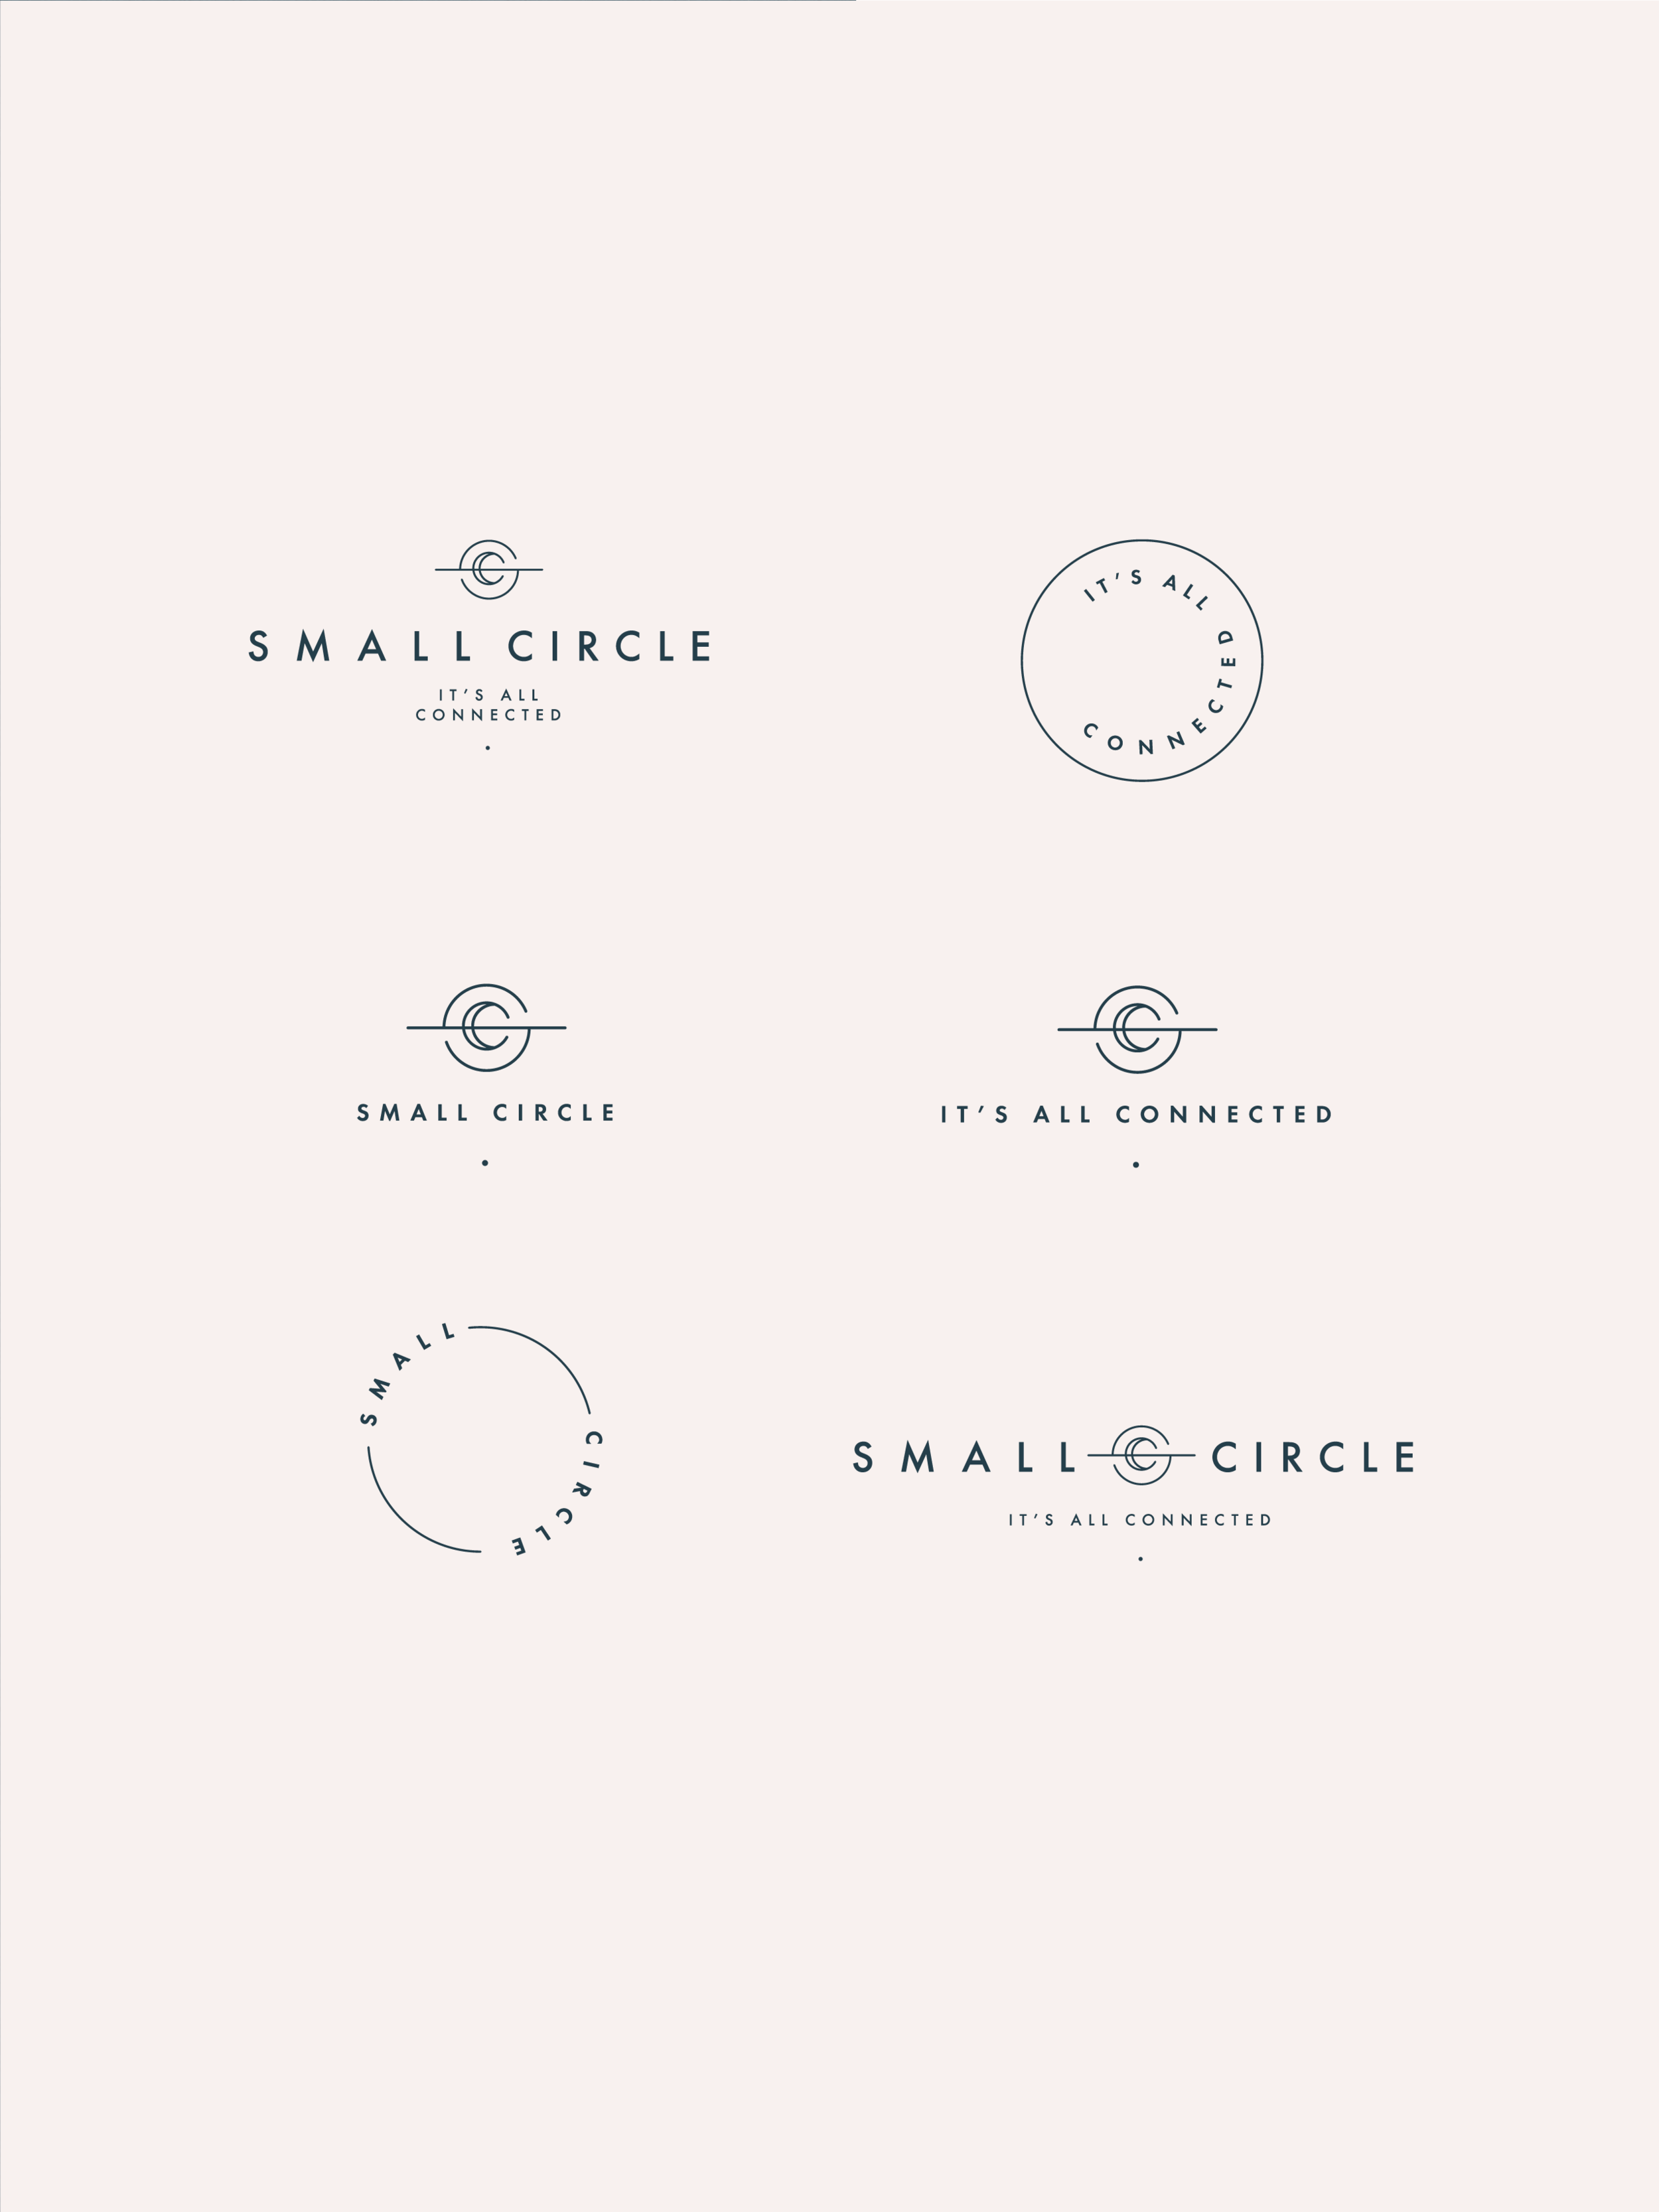 Small Circle logo elements - January Made Design